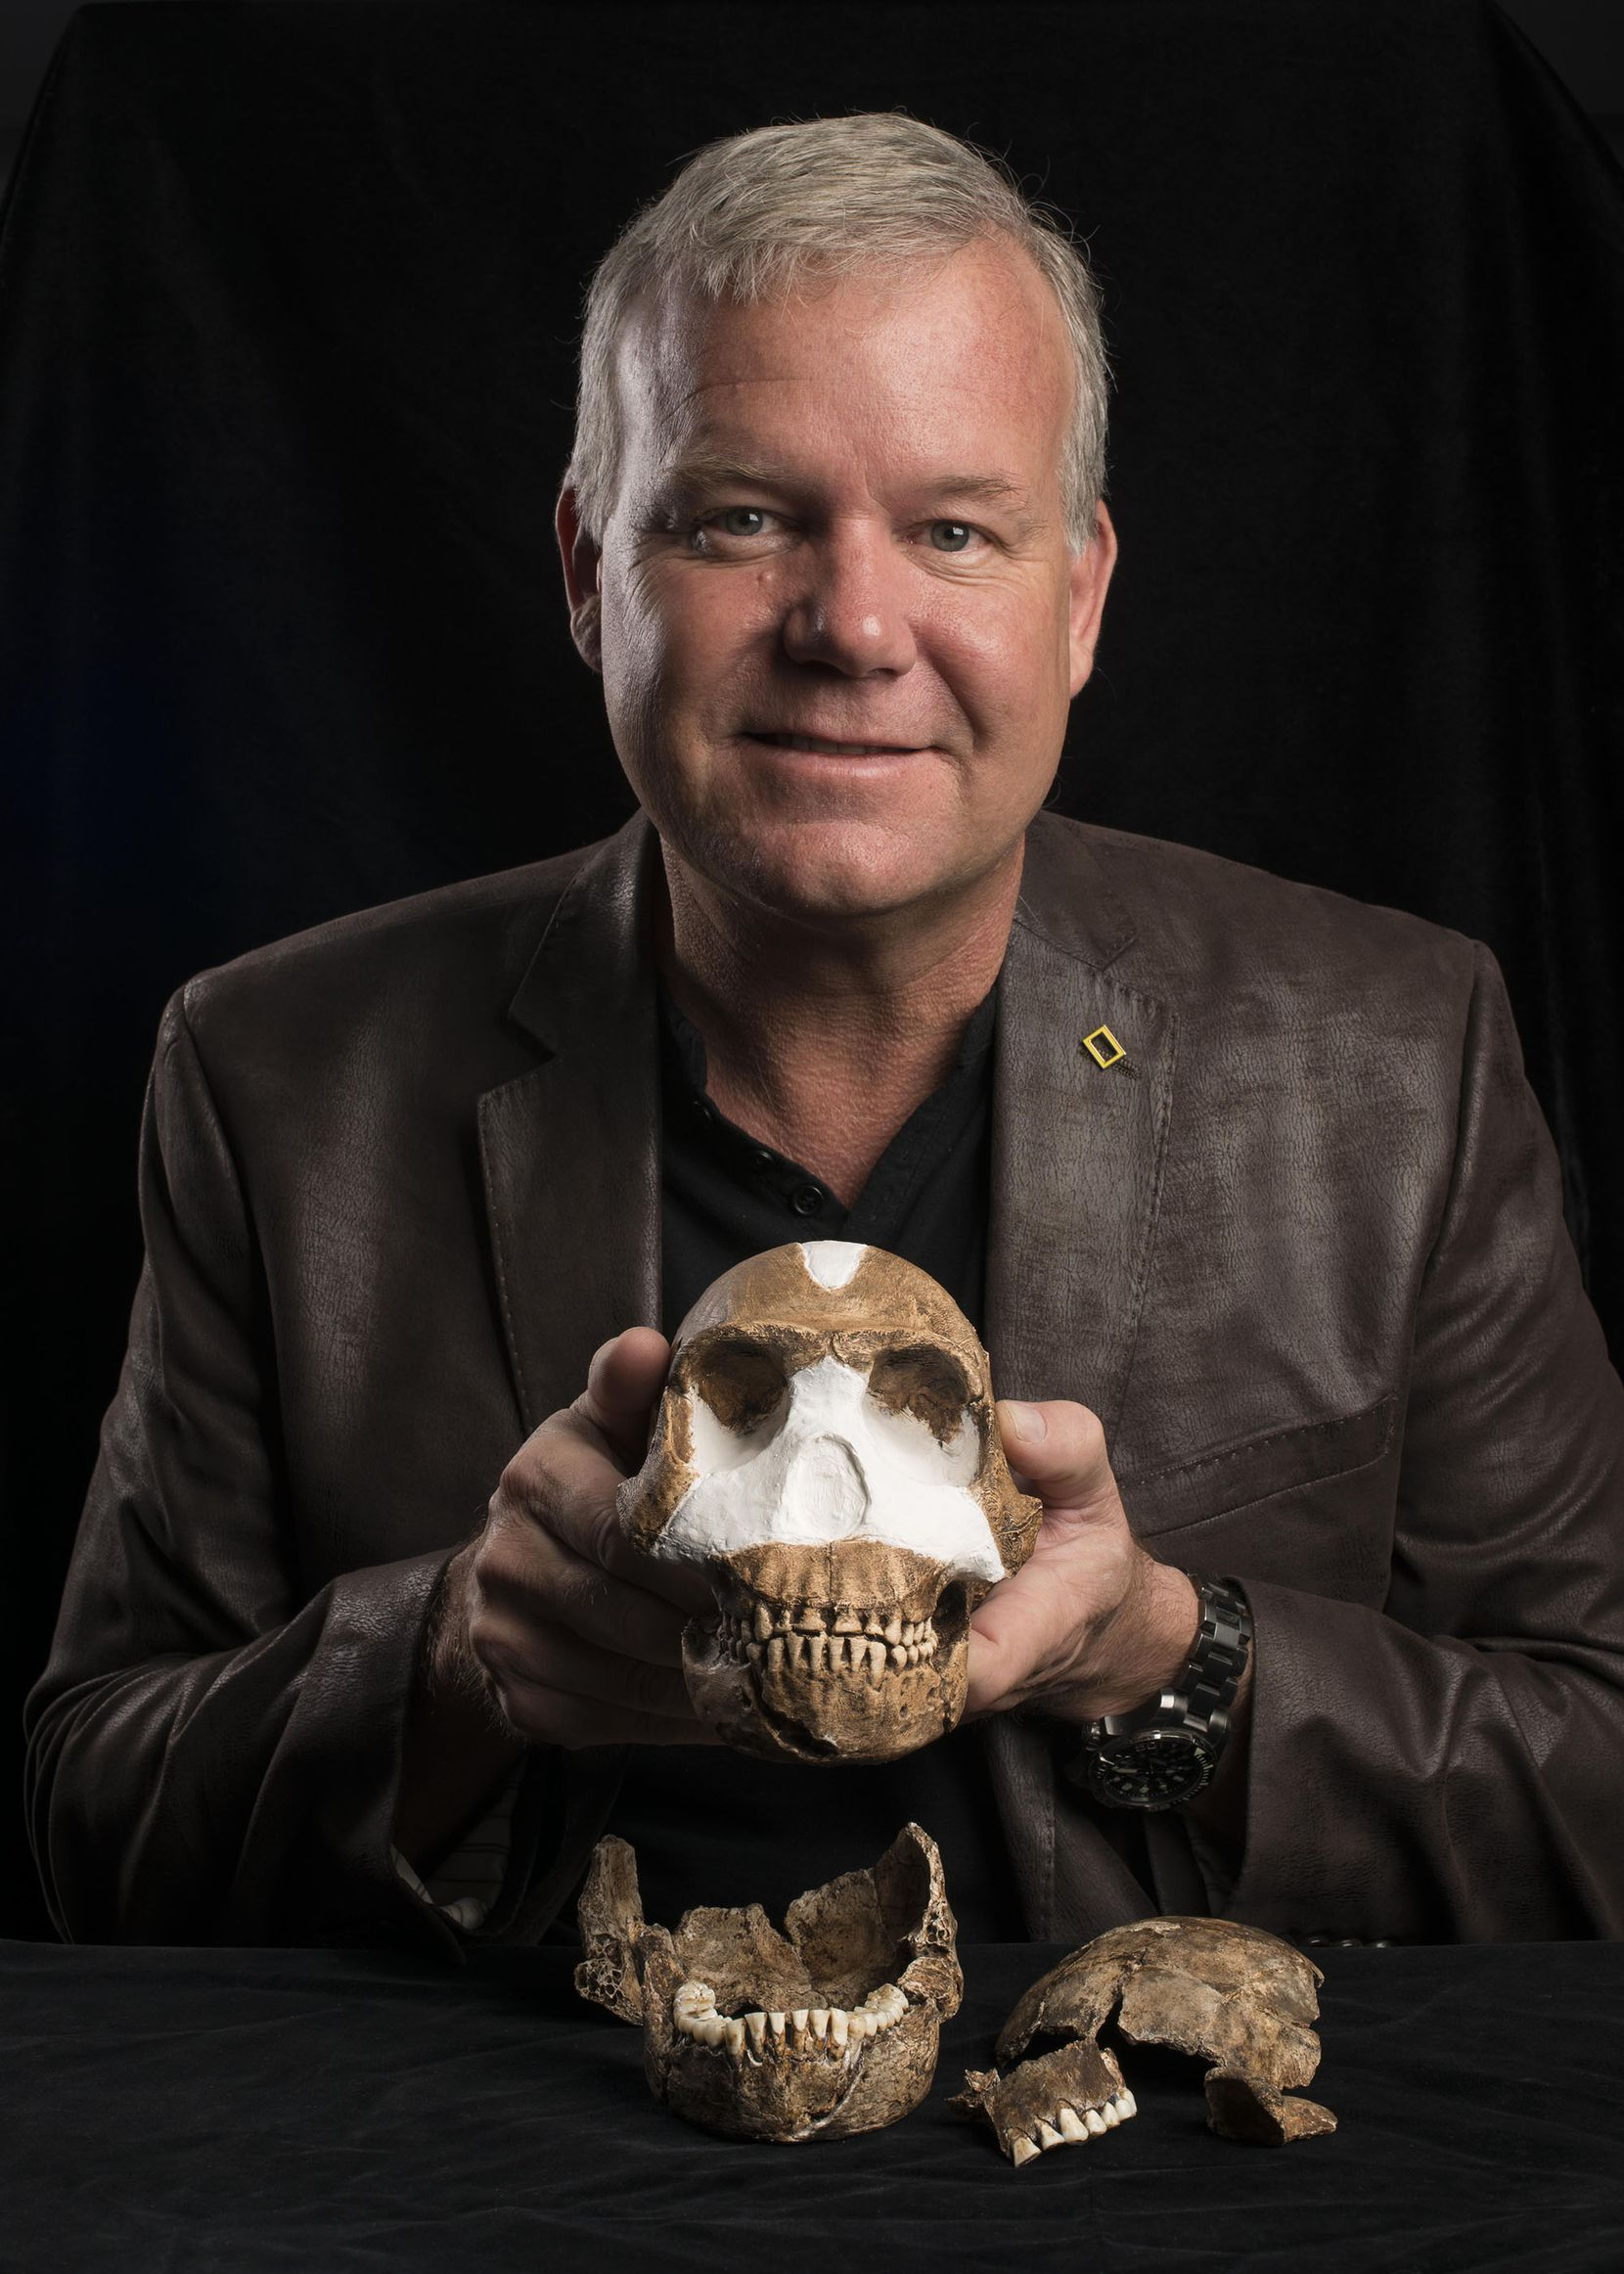 Professor Lee Berger with Homo naledi, estimated to be around 300,000 years old.